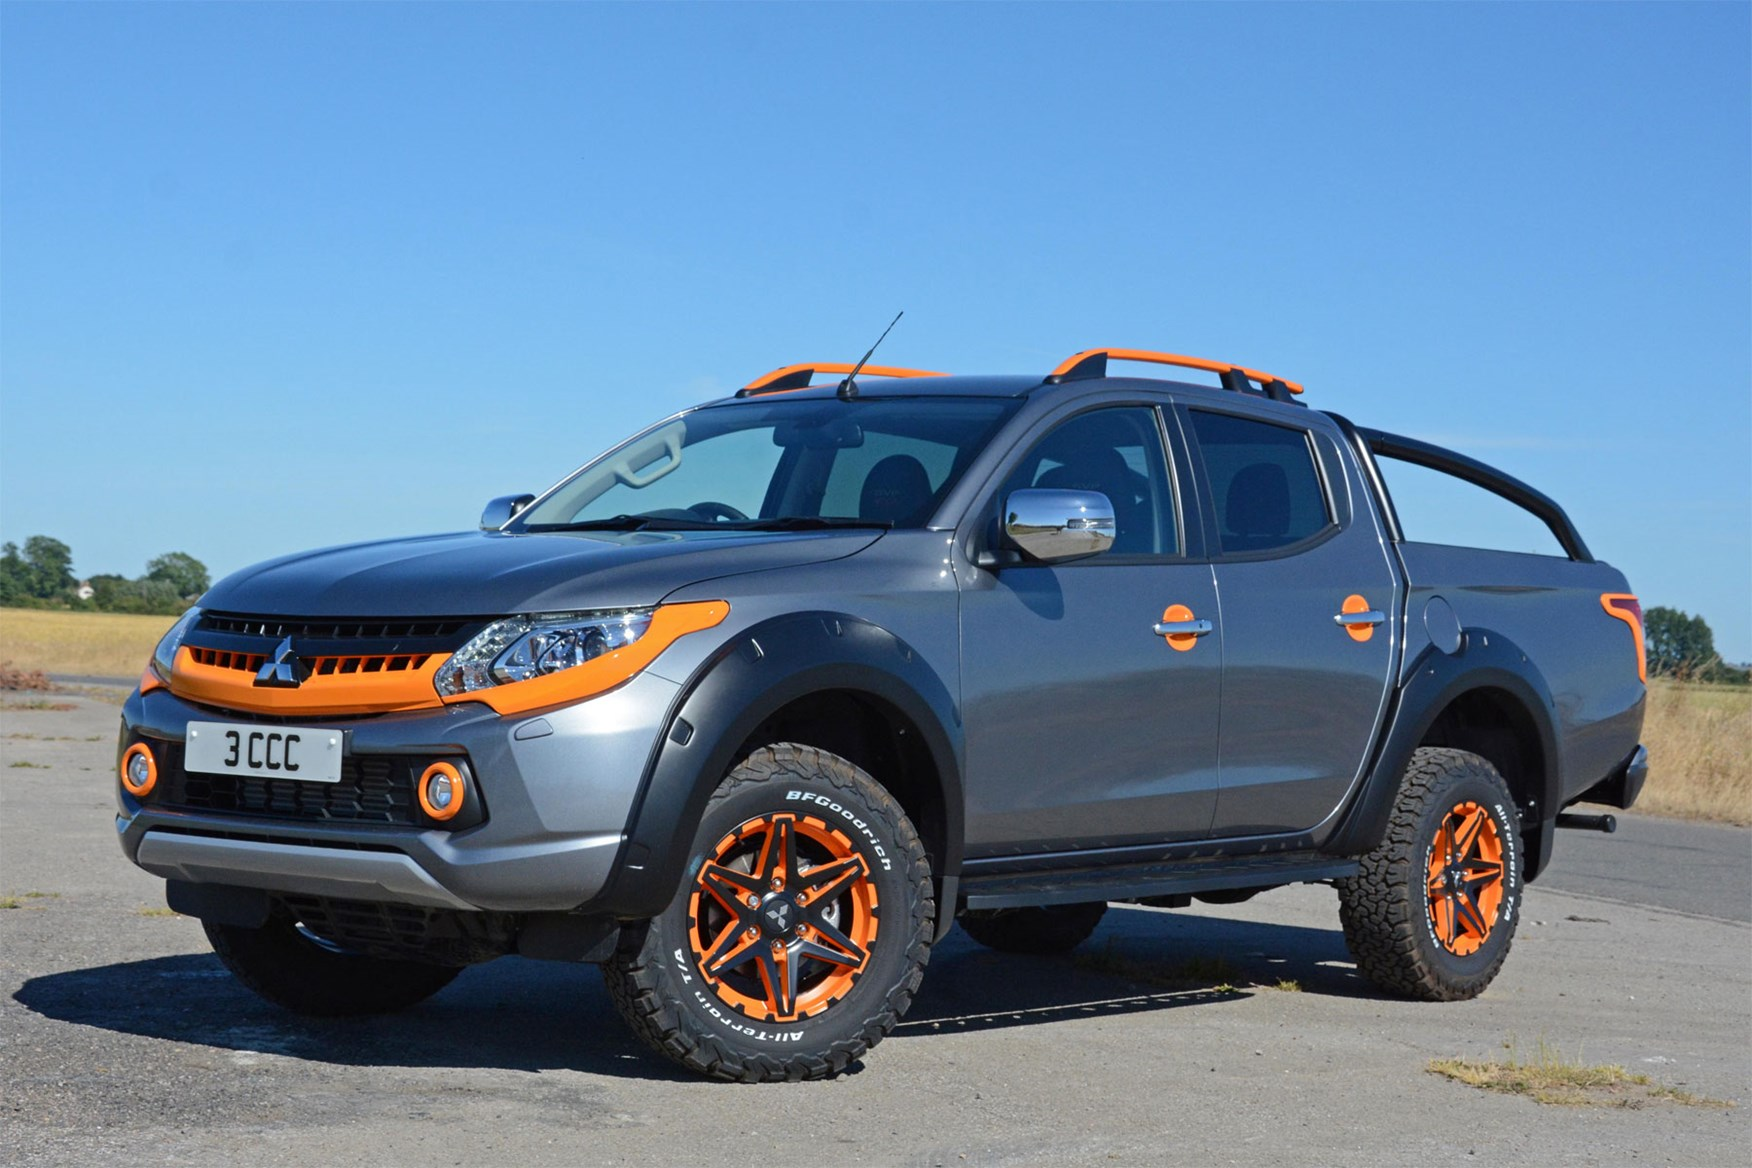 Mitsubishi L200 Barbarian SVP II review - front view, grey and orange